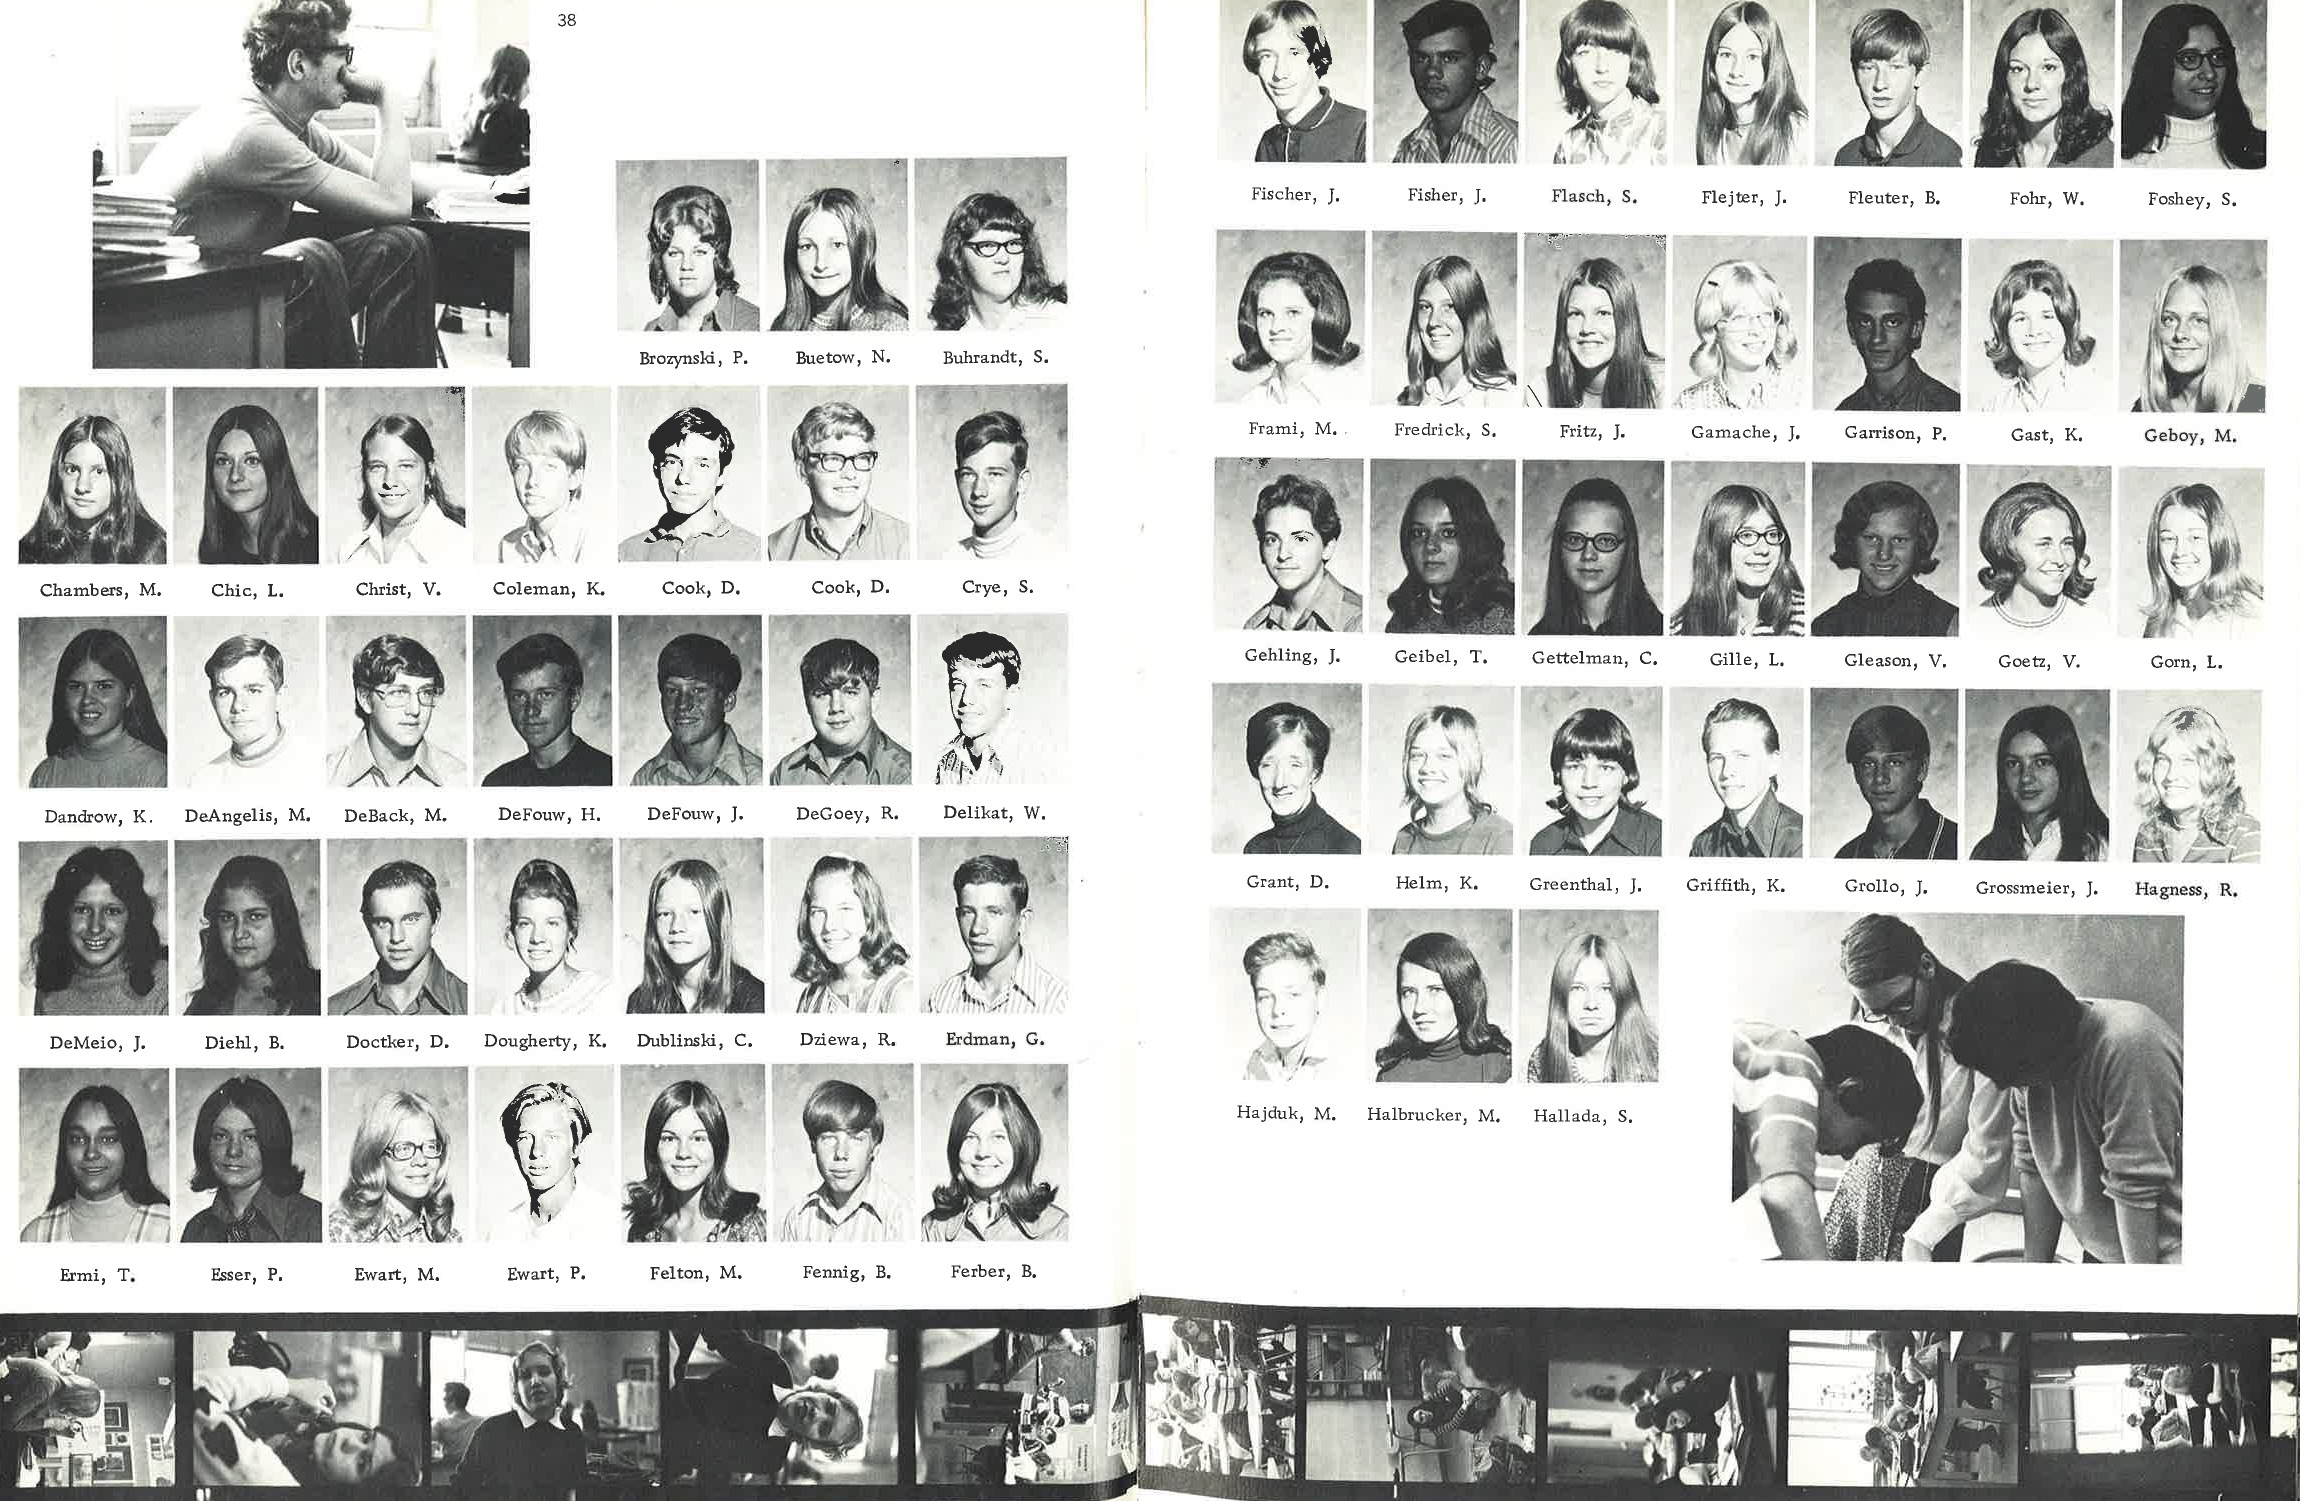 1972_Yearbook_38-39.jpg